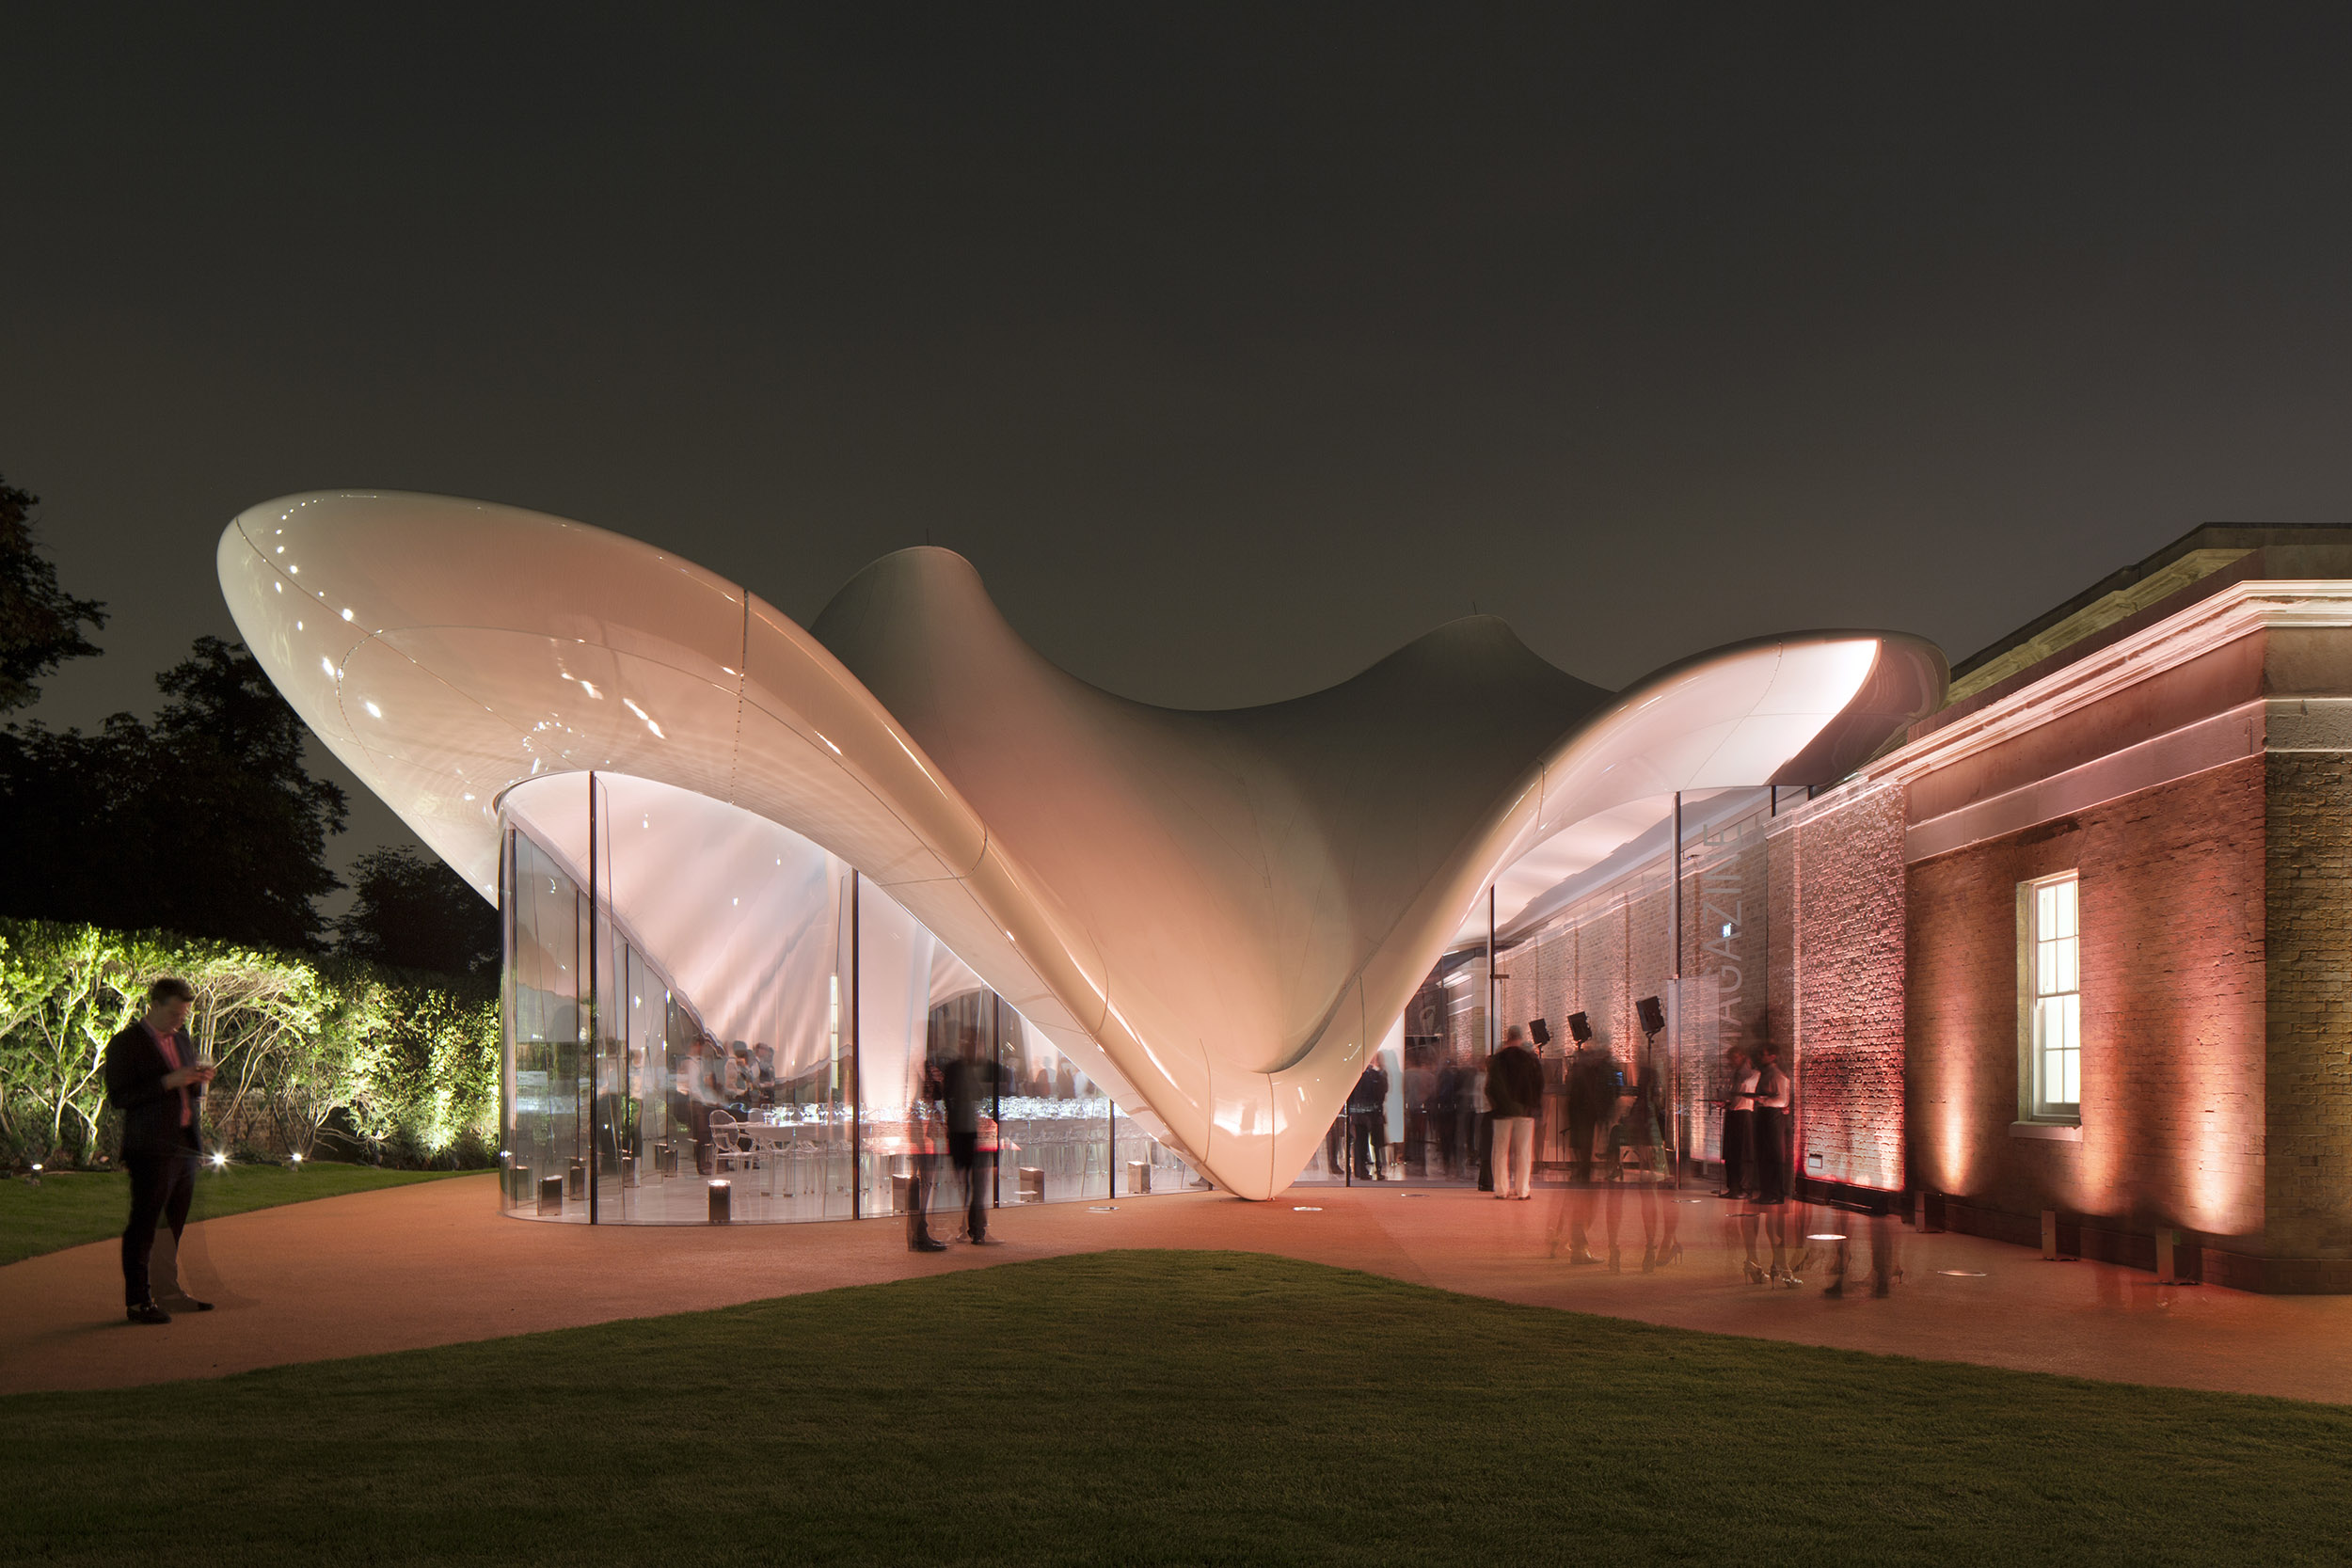 The Serpentine Sackler Gallery By Zaha Hadid Opens